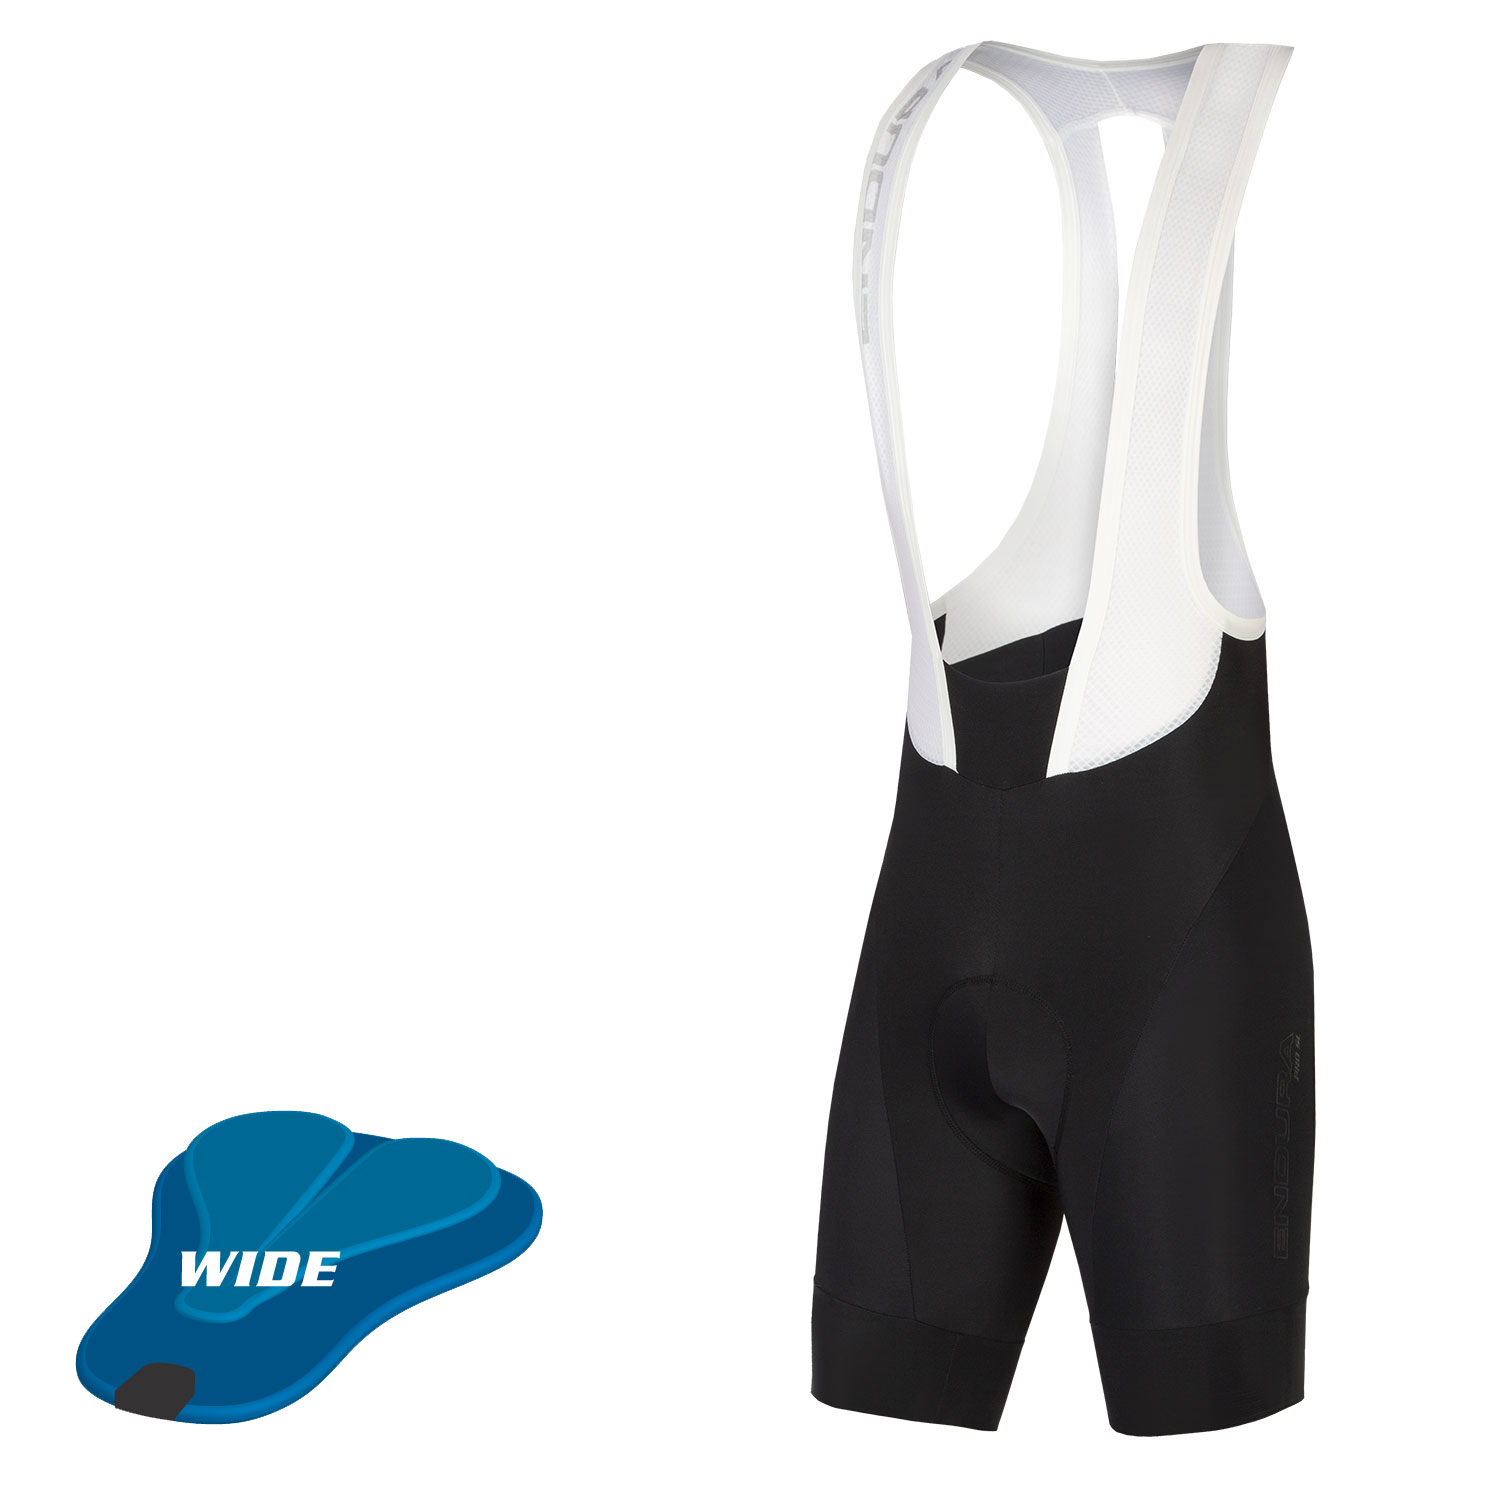 Pro SL Bibshort II Long Leg (wide-pad) Black